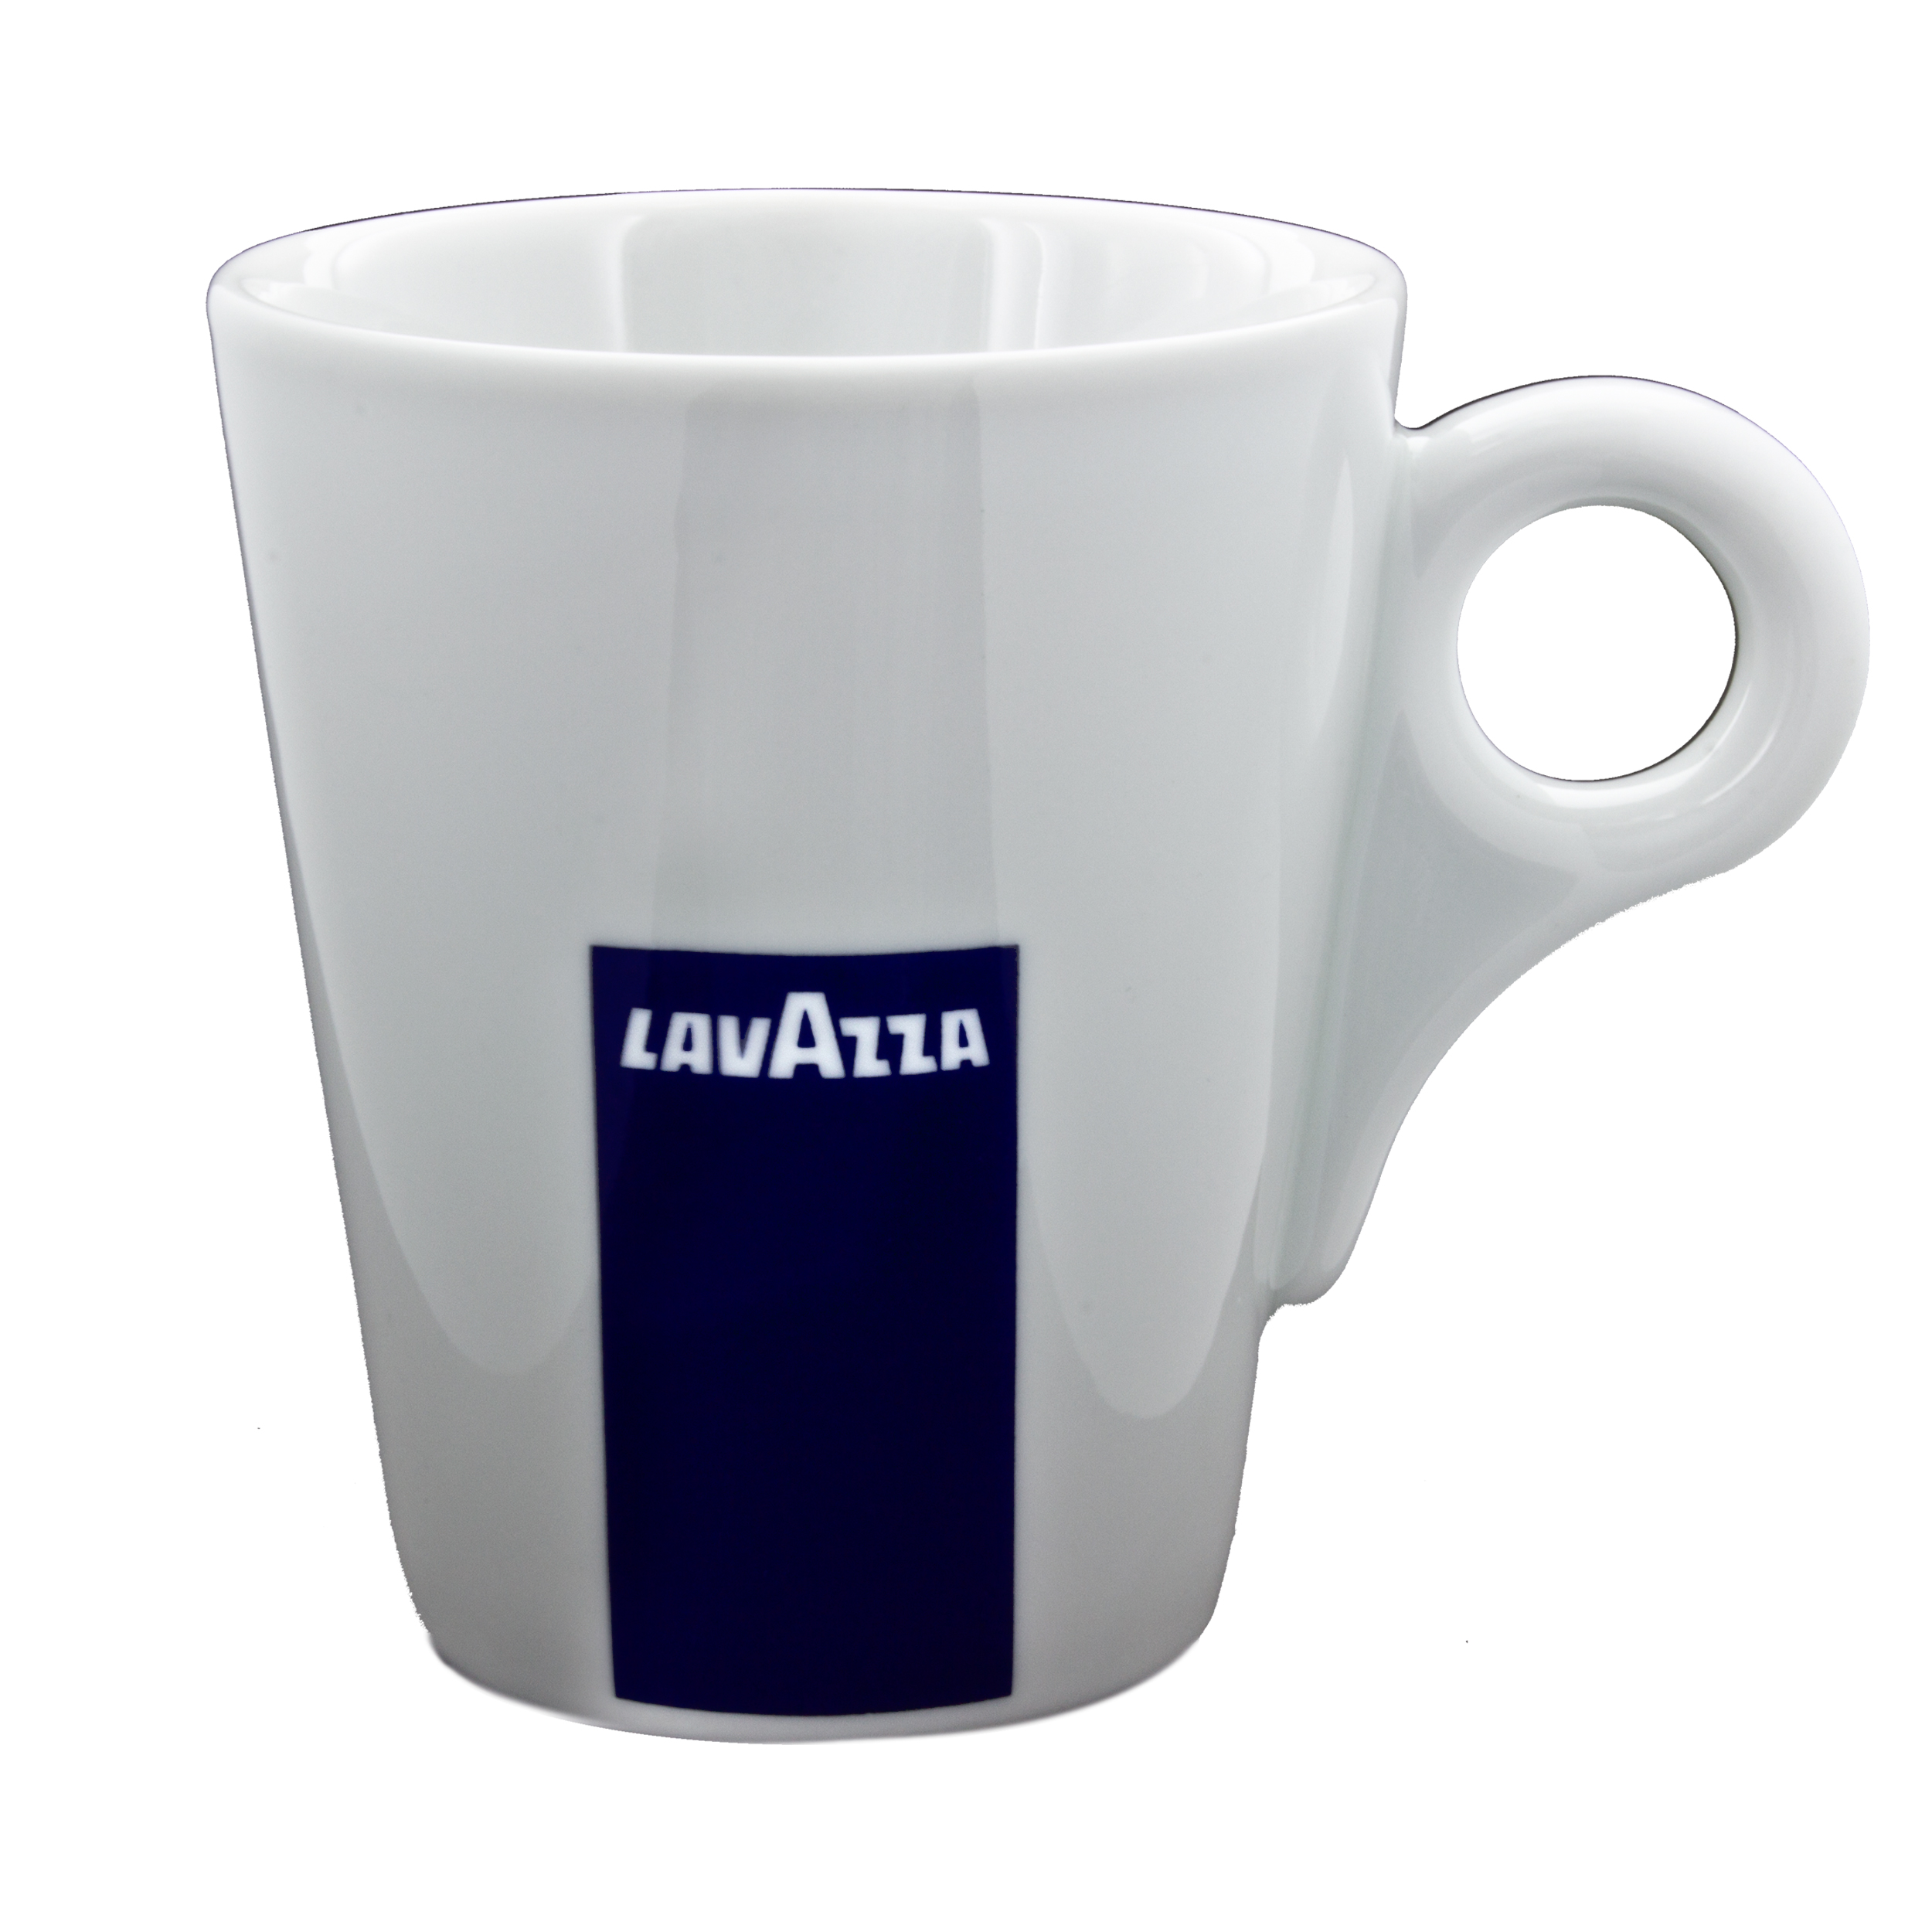 Coffee CupSet Shop At Collection 6MugPorcelainWhite350ml Blu Of Lavazza About 0mvwN8nyO